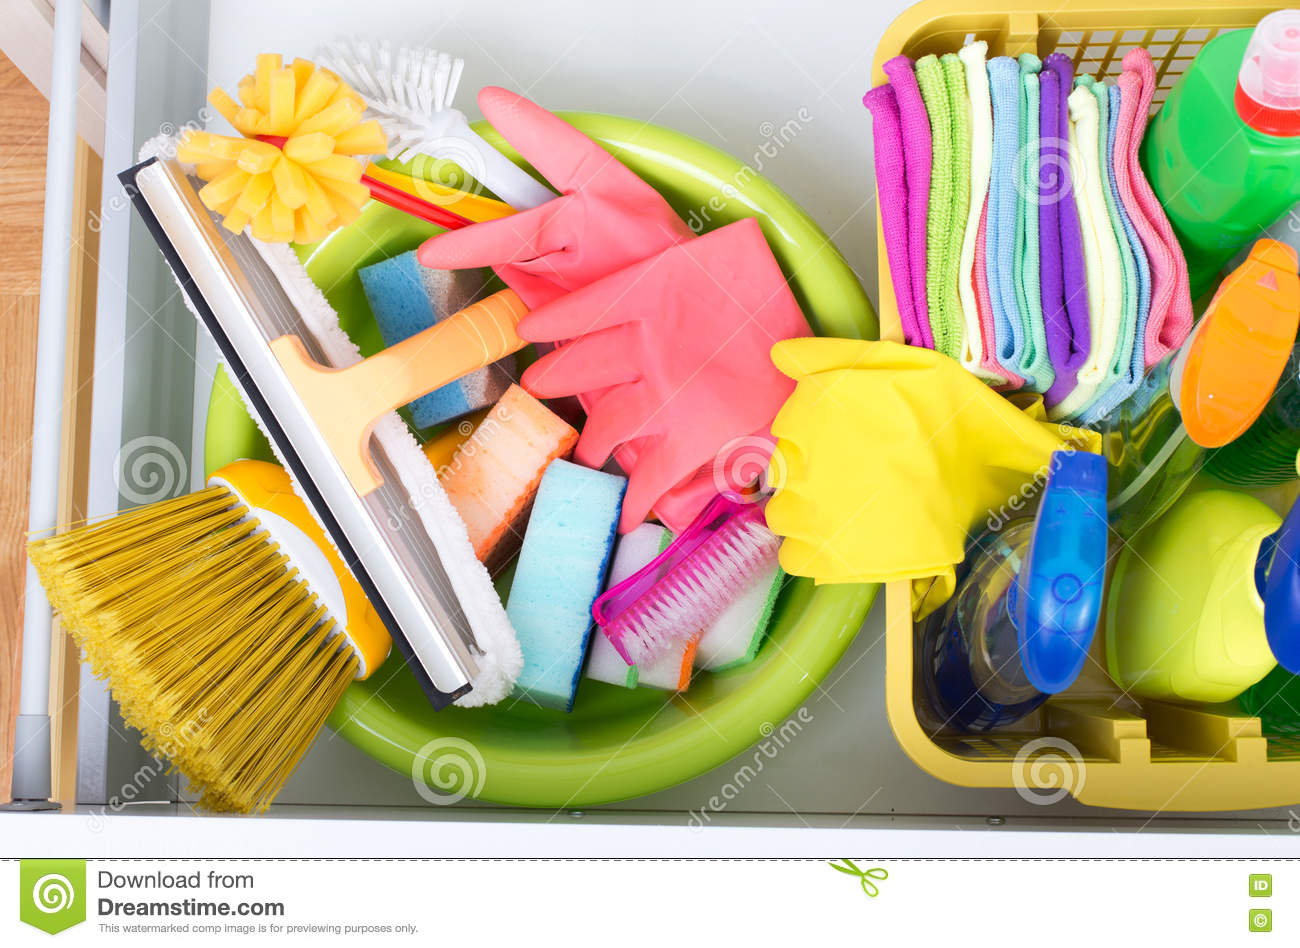 Cleaning Supplies In Drawer Stock Photo Image Of Chemical Brush